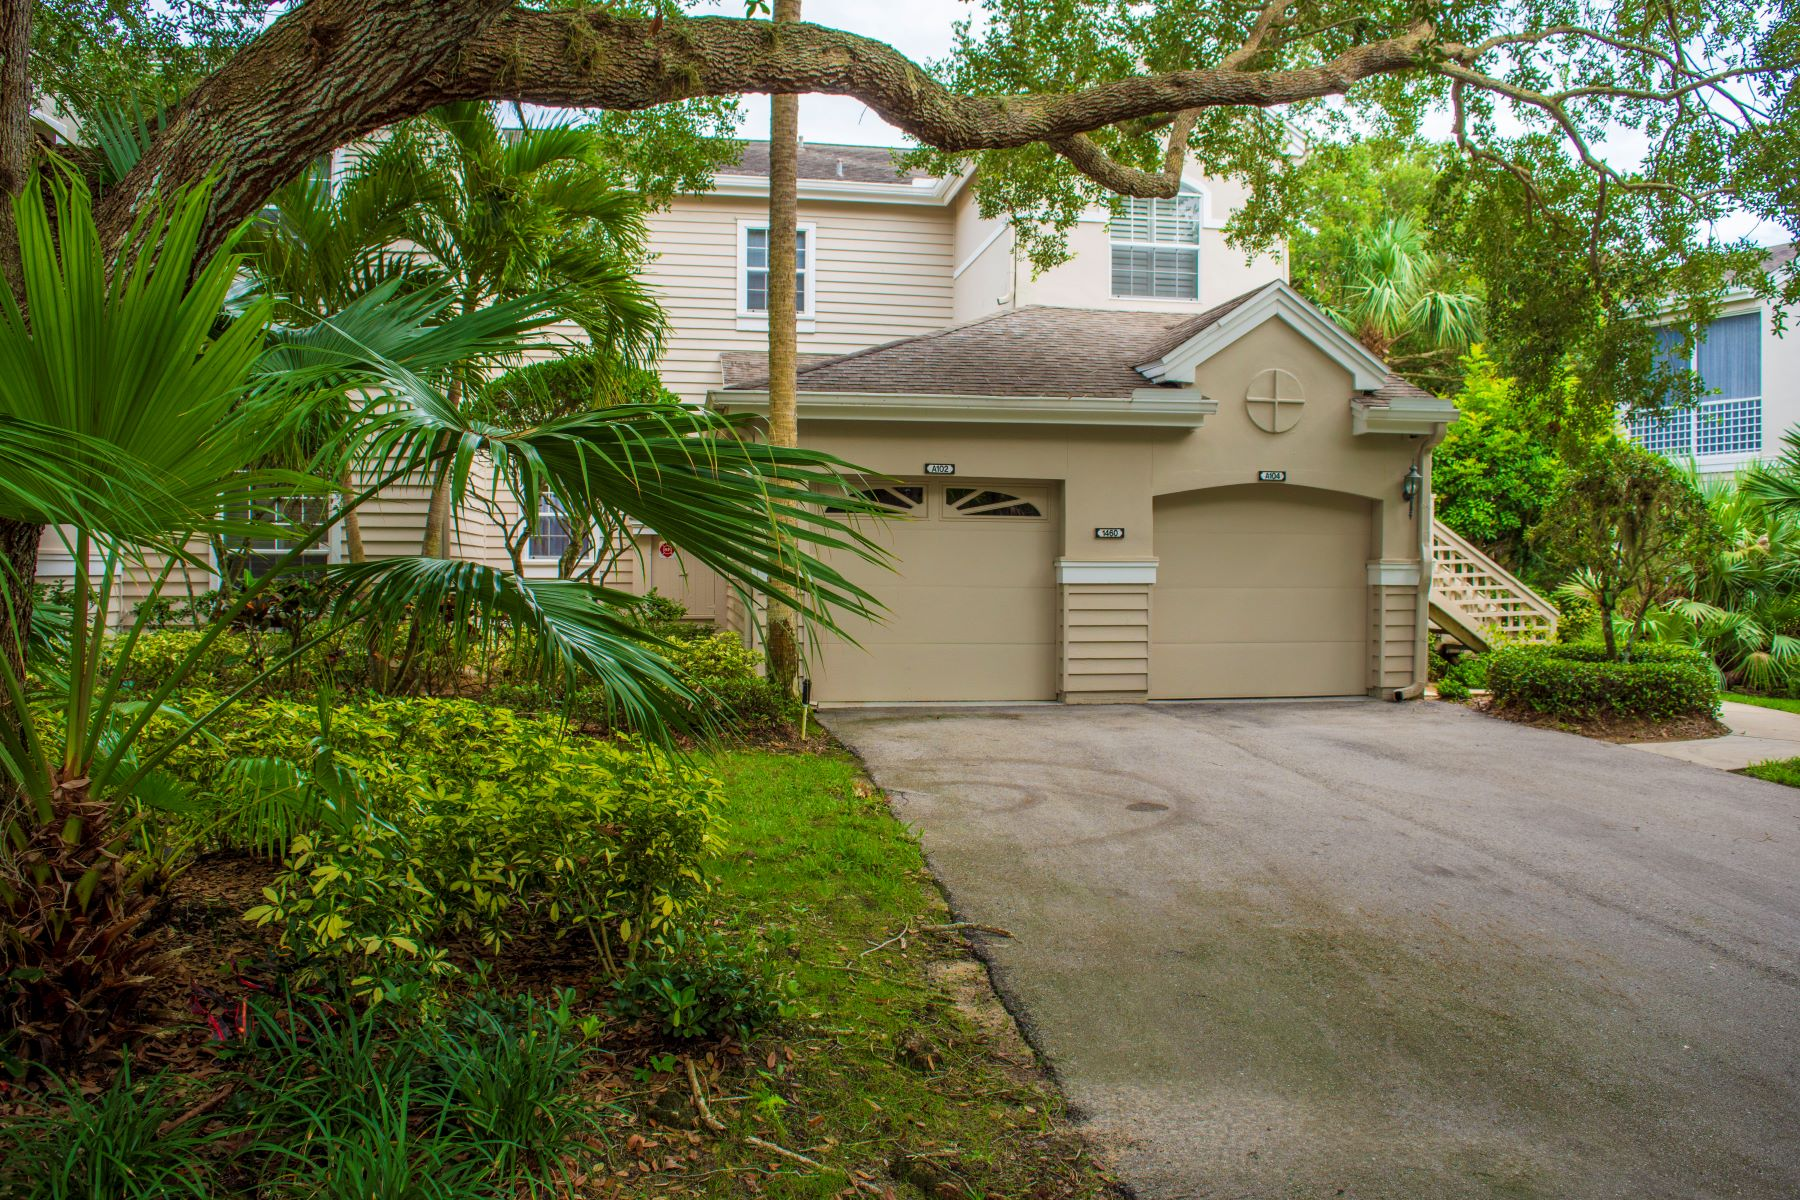 Property for Sale at 1460 Winding Oaks Circle W, #A102, Vero Beach, FL 1460 Winding Oaks Circle W, A102 Vero Beach, Florida 32963 United States